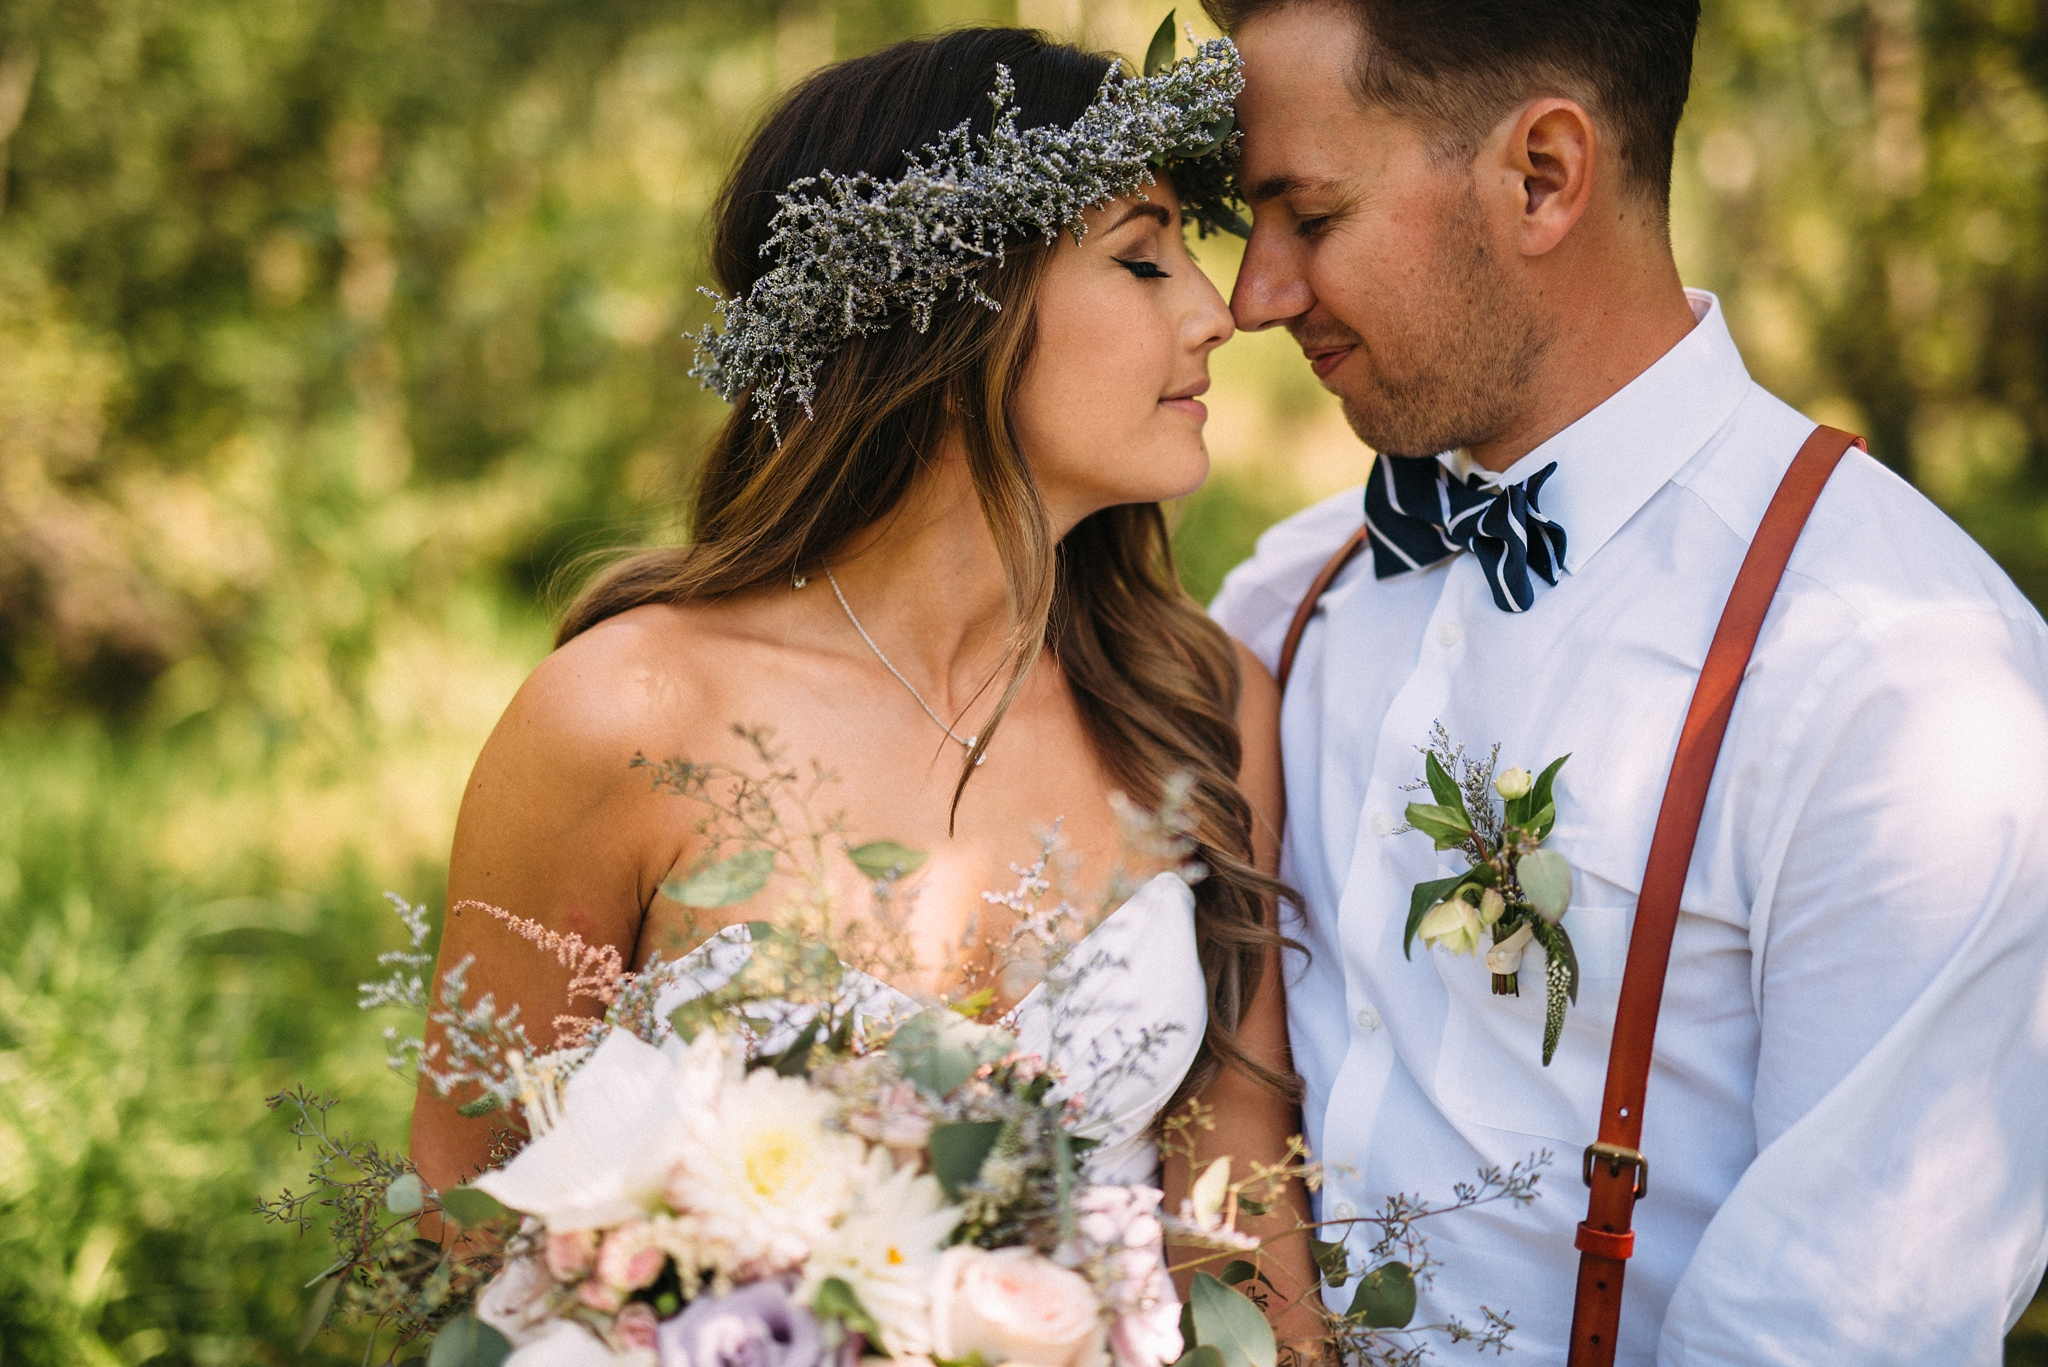 kaihla_tonai_intimate_wedding_elopement_photographer_4446